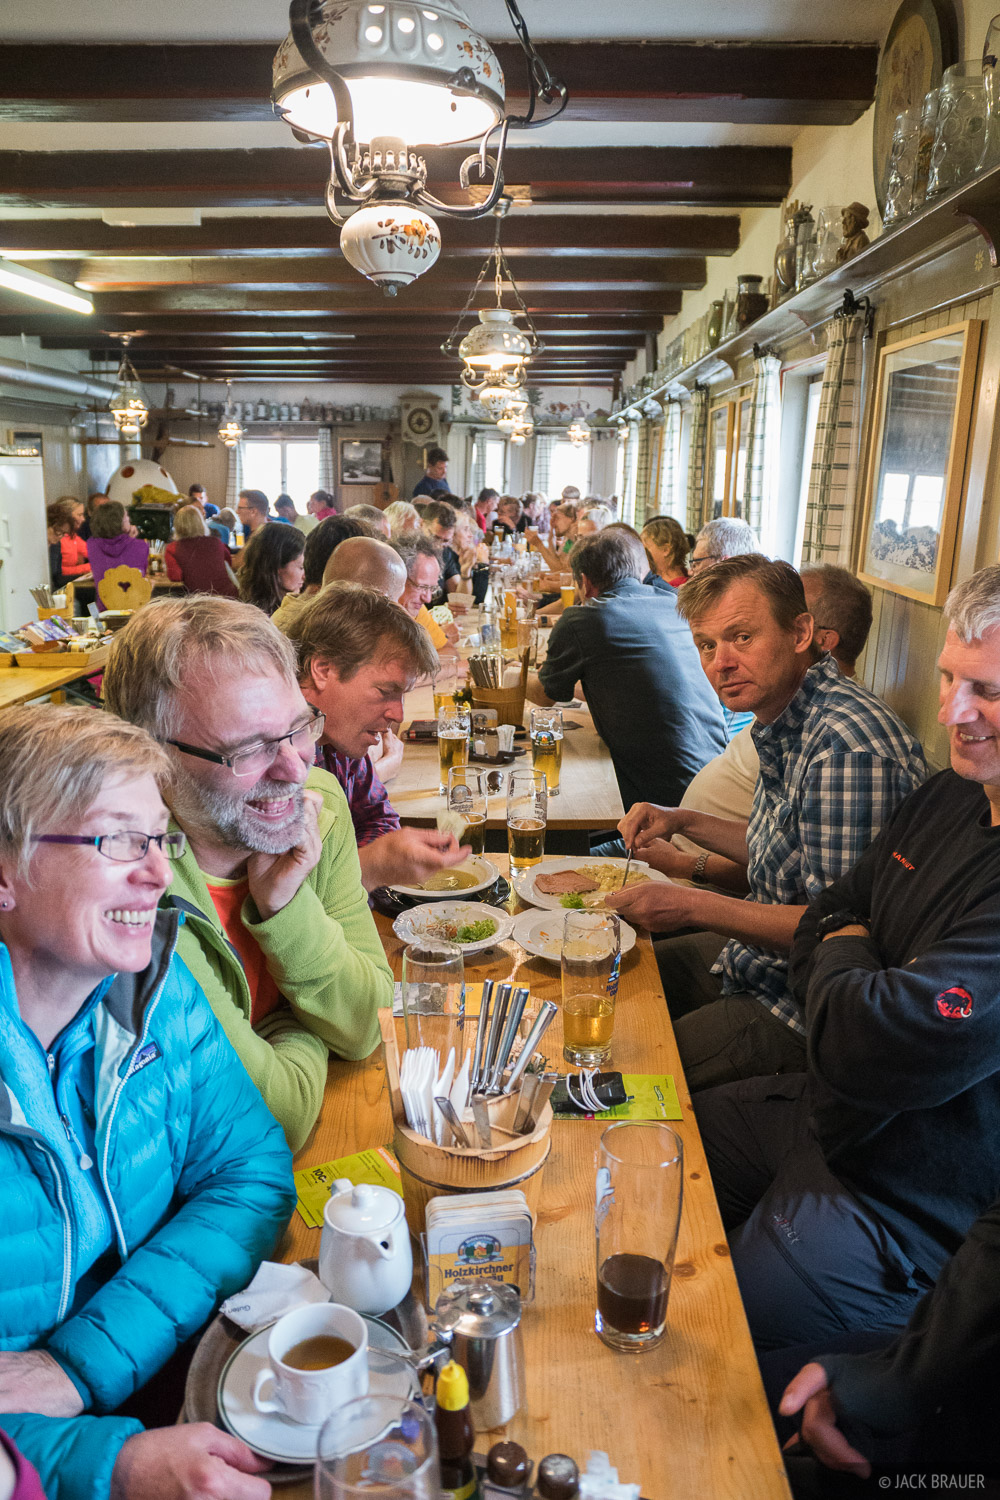 A typical scene inside an Alpine hut at dinnertime, with lots of beer and laughter!